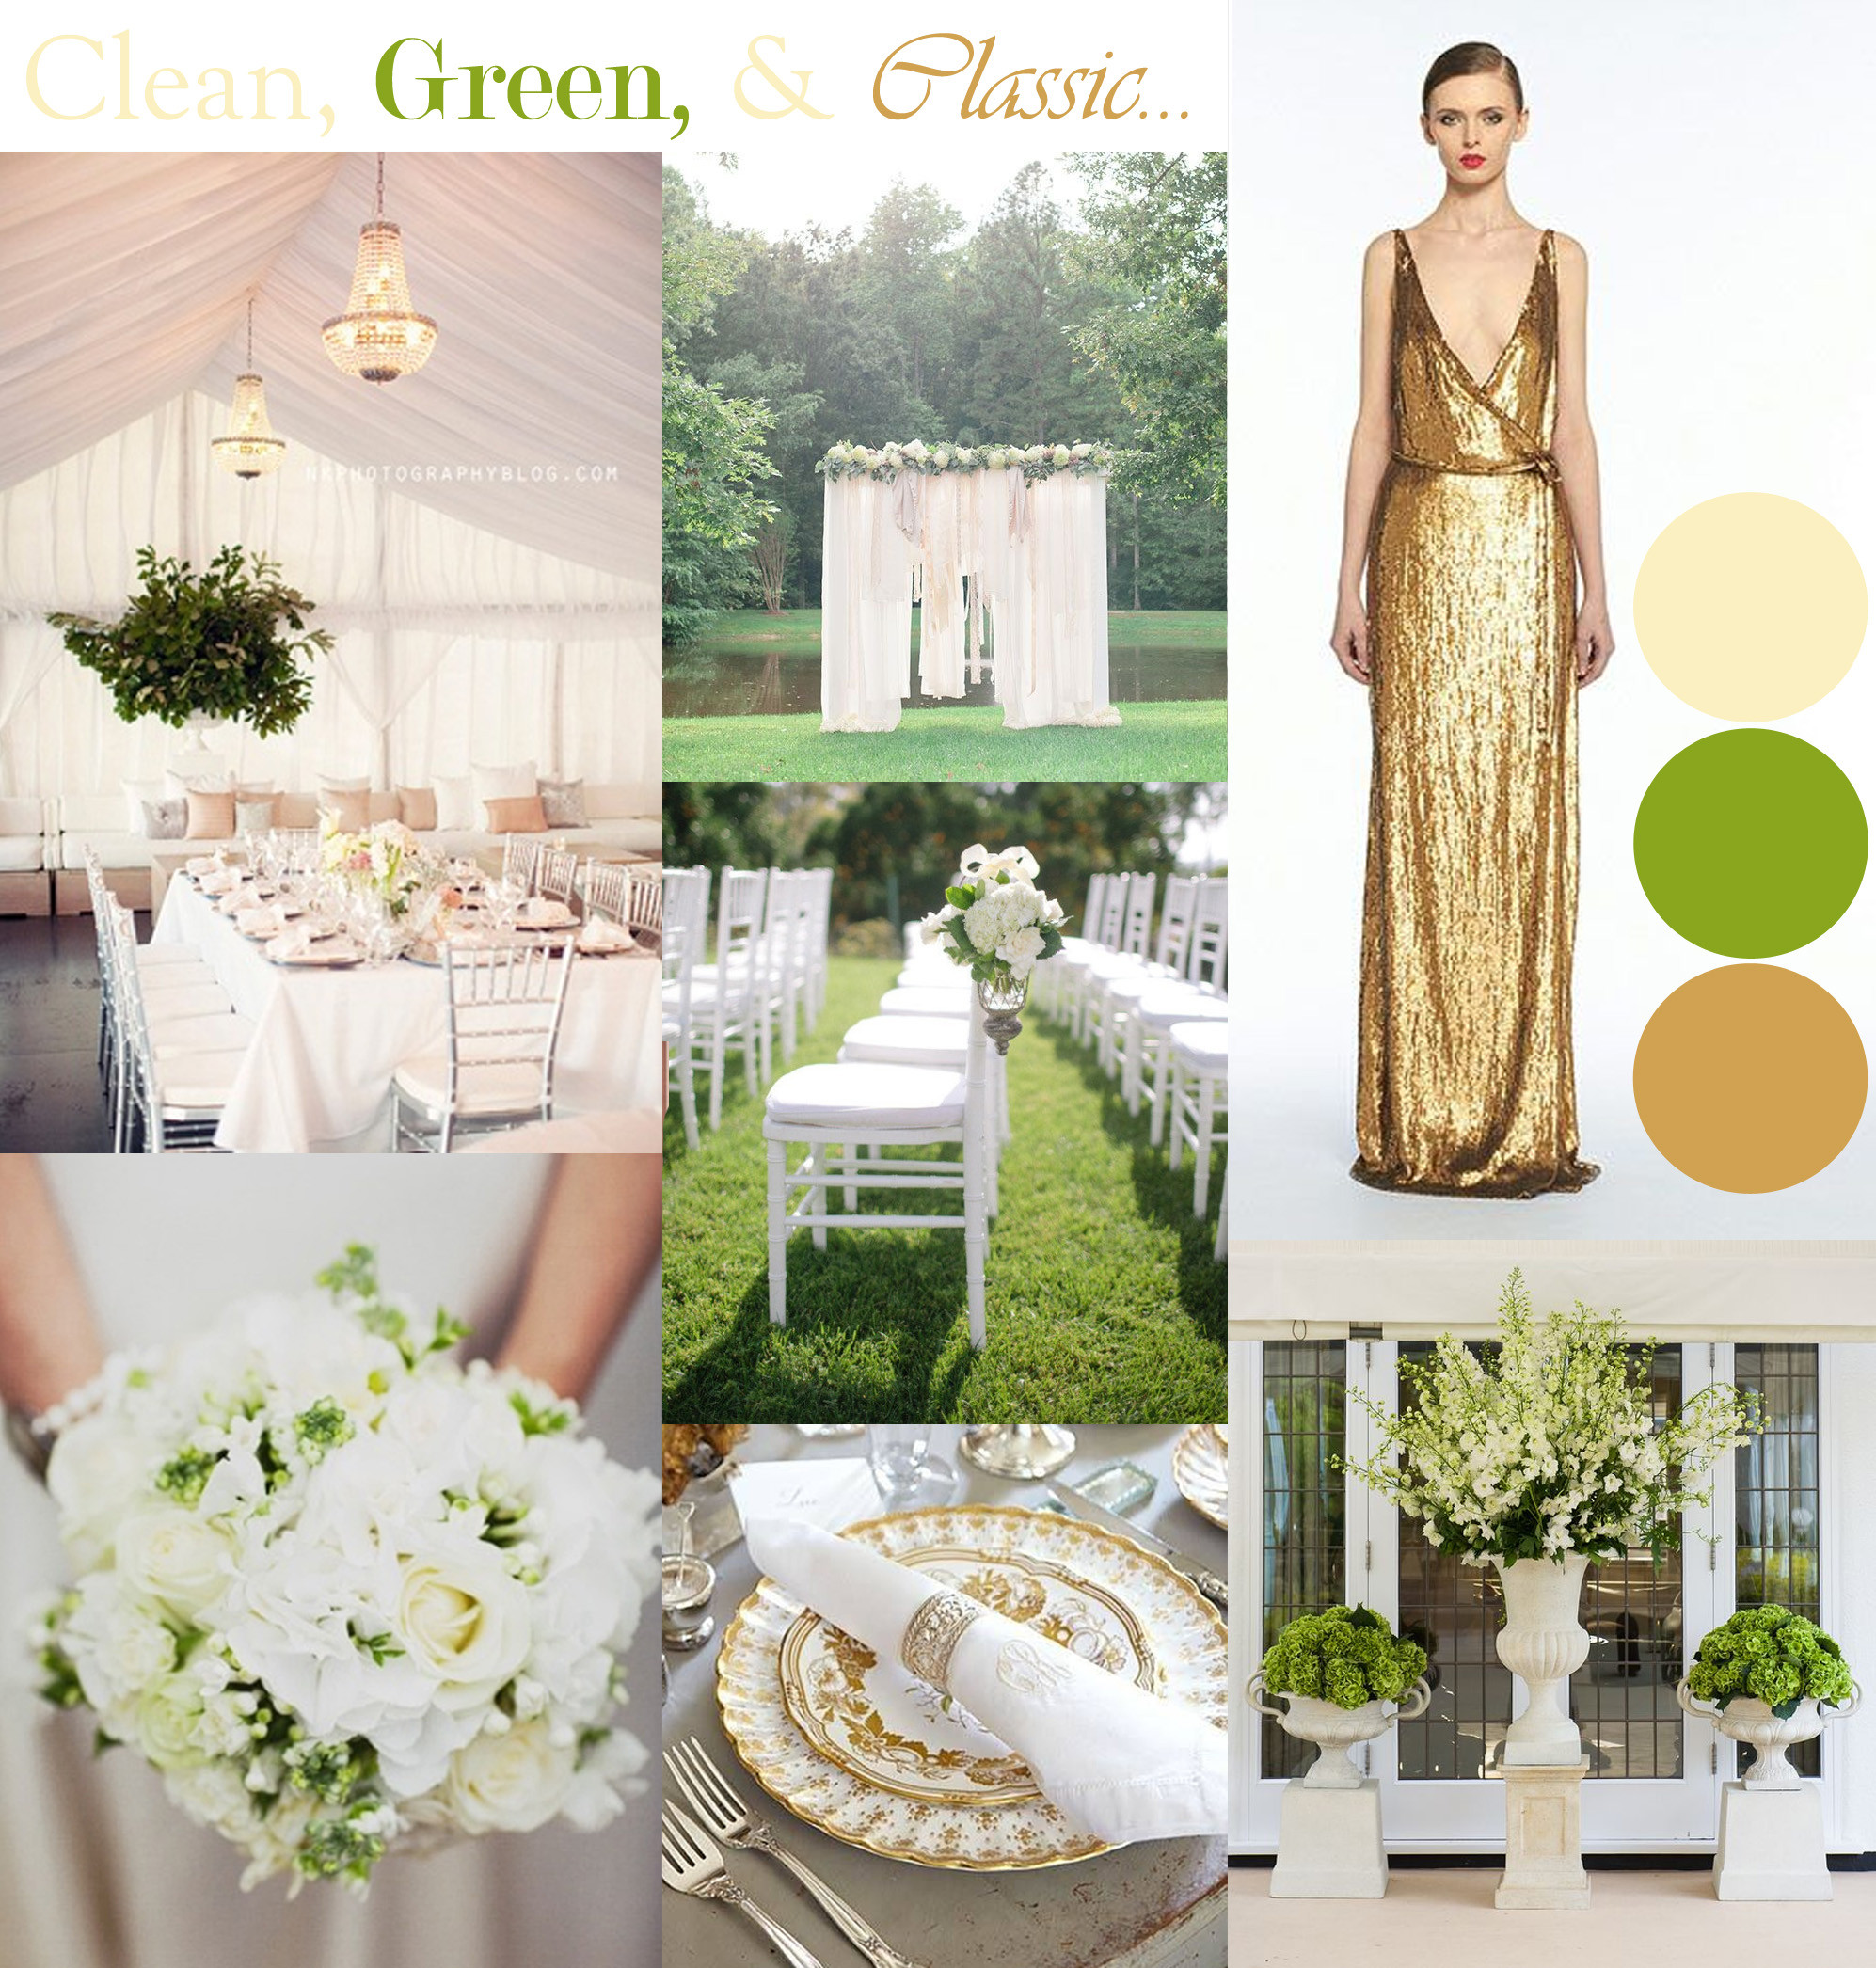 Clean, Green & Classic Wedding Design